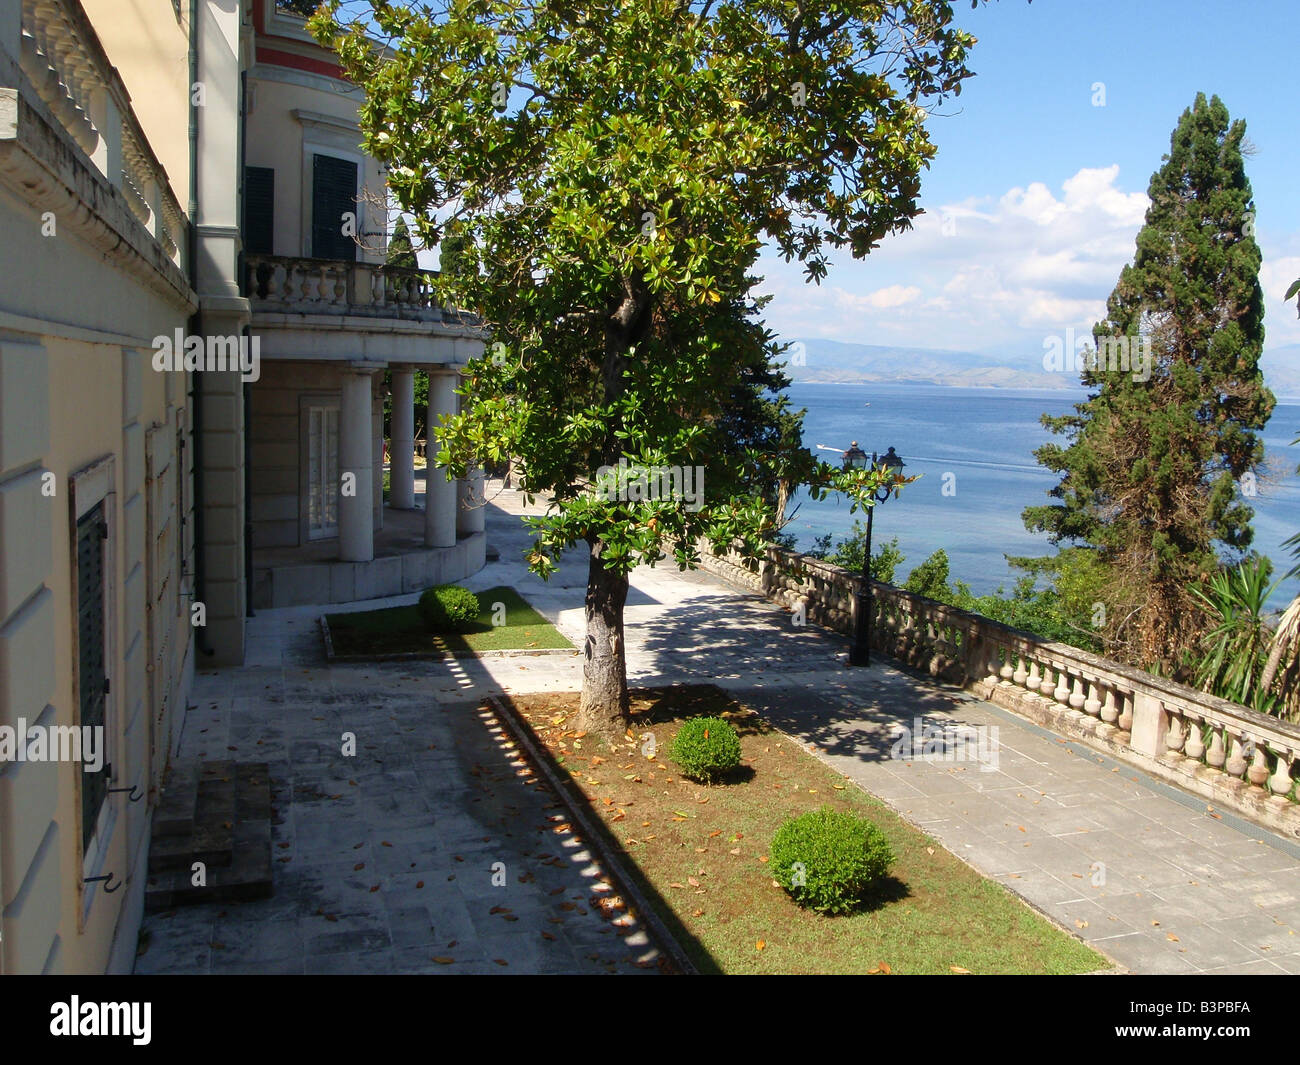 The Old Palace Building at Mon Repos, Corfu, Greece. - Stock Image